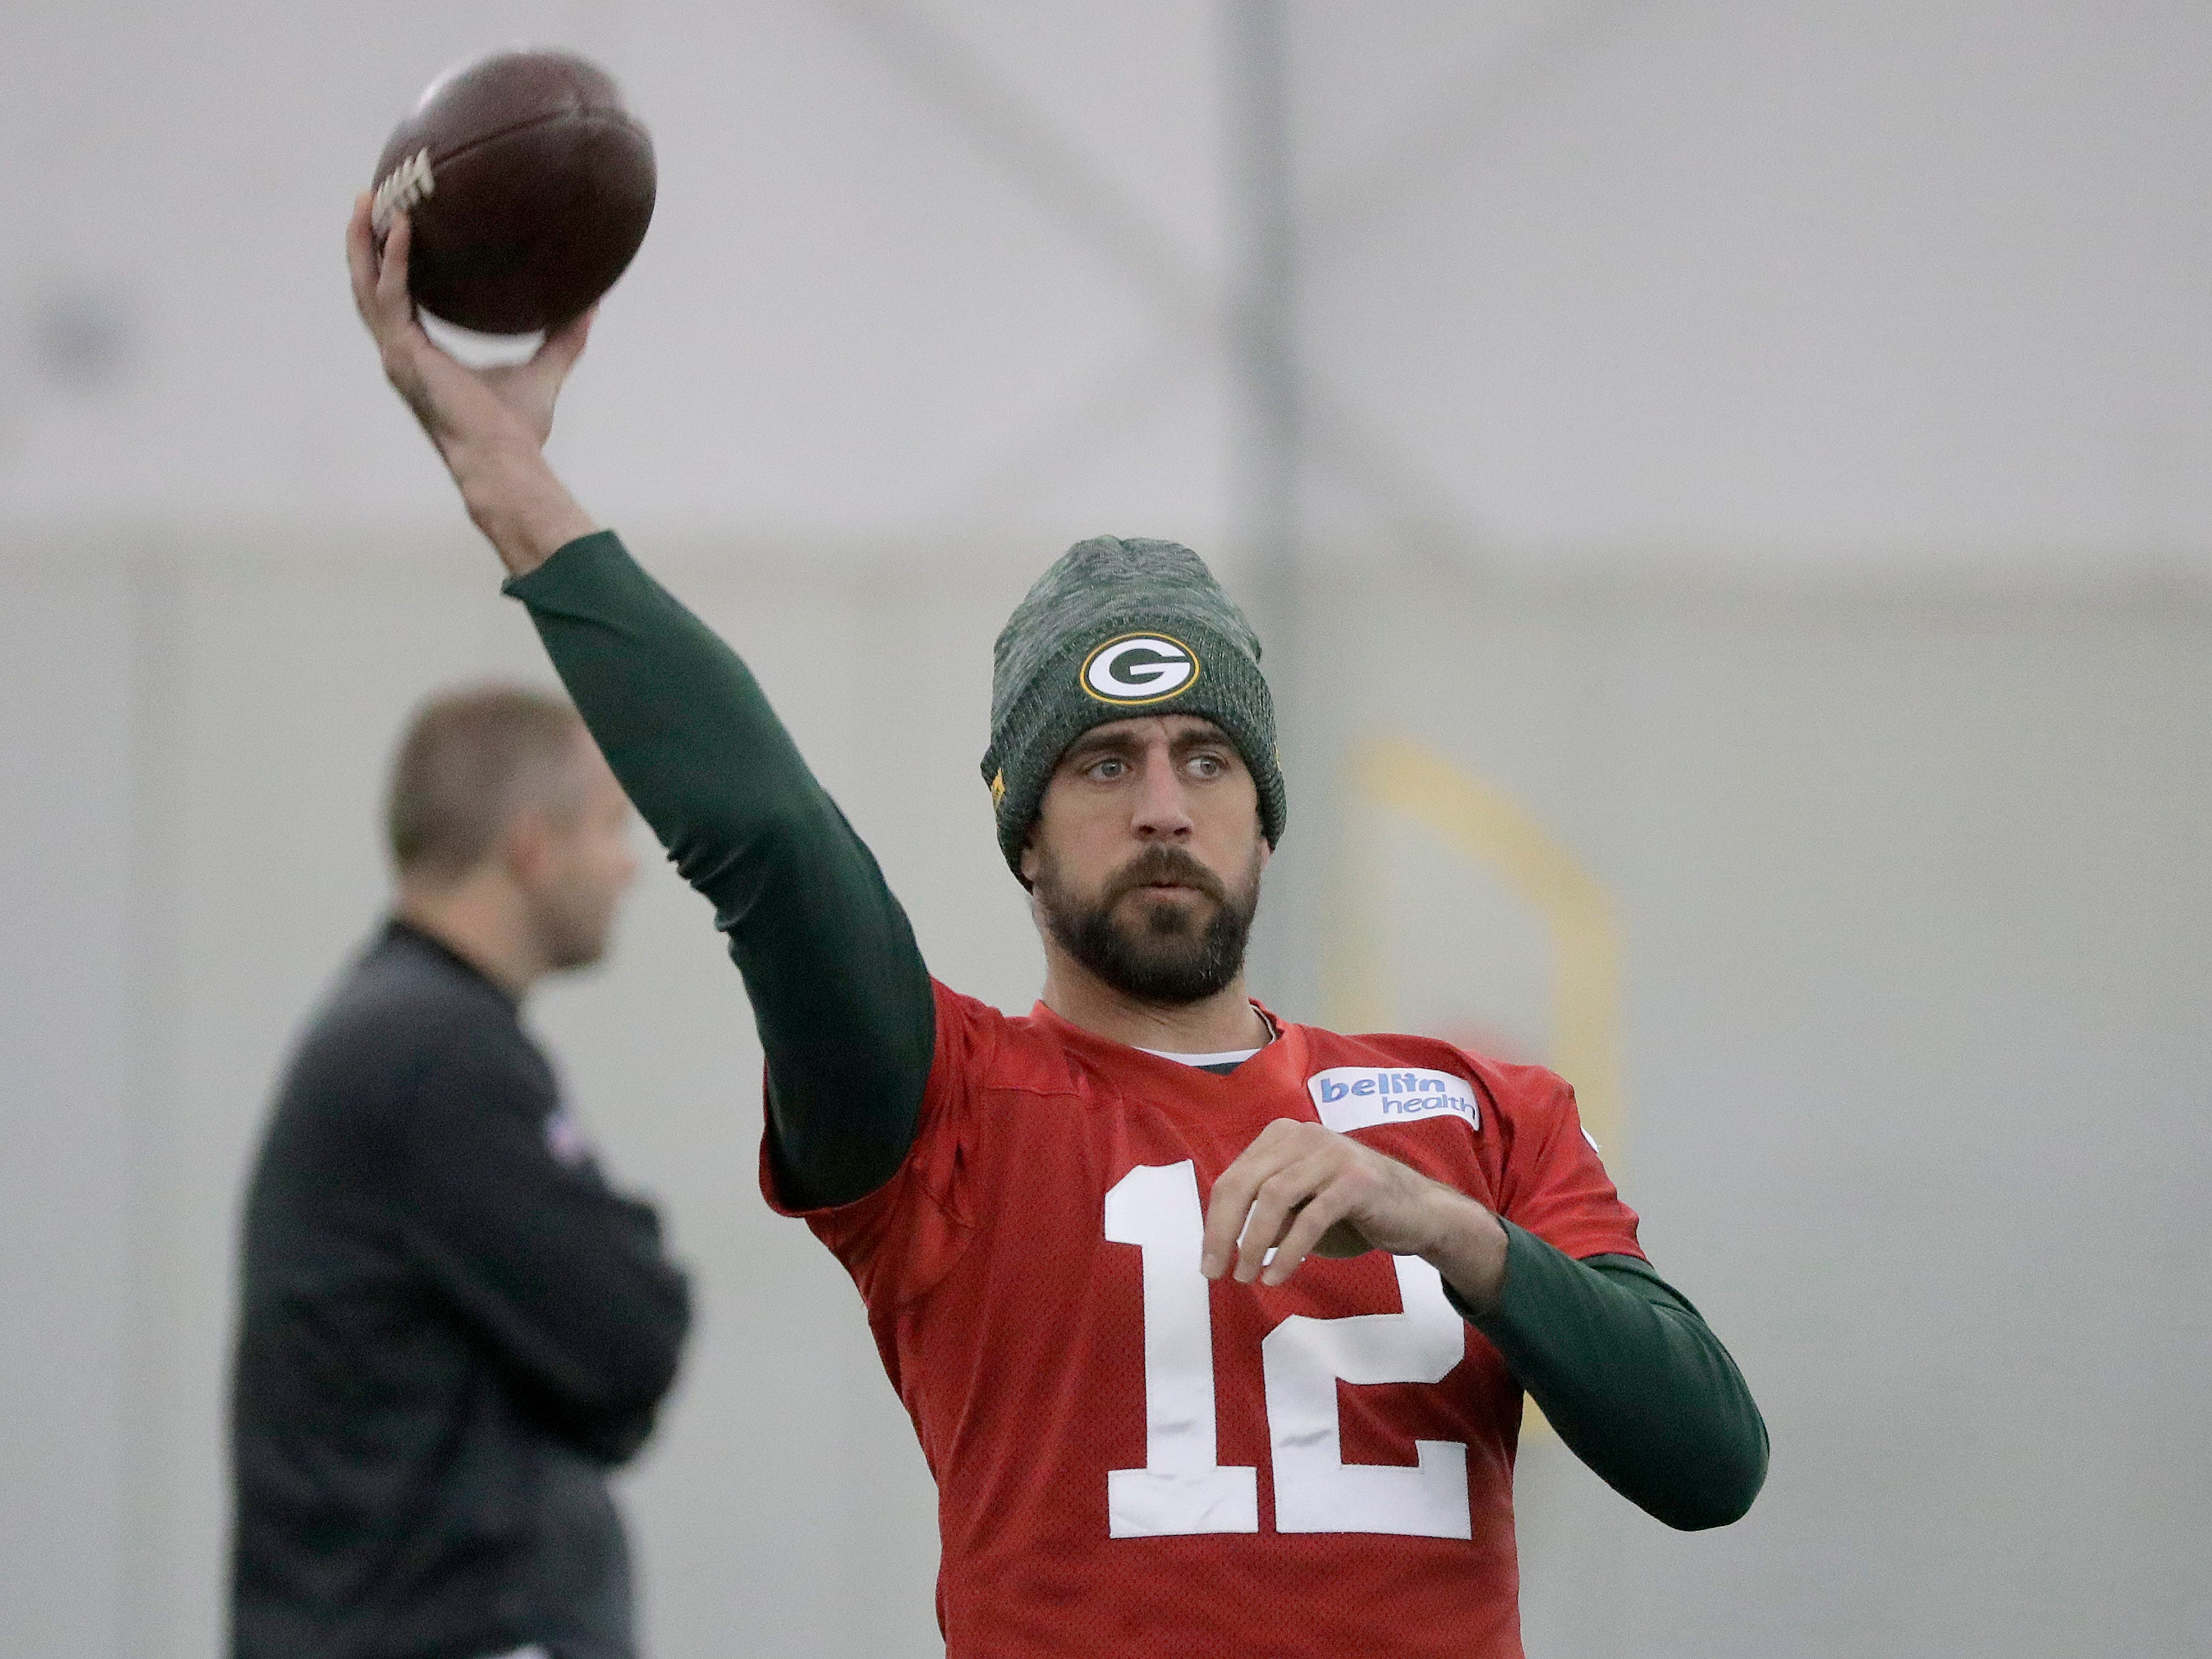 Green Bay Packers quarterback Aaron Rodgers (12) during practice Wednesday, November 7, 2018 at the Don Hutson Center in Ashwaubenon, Wis.